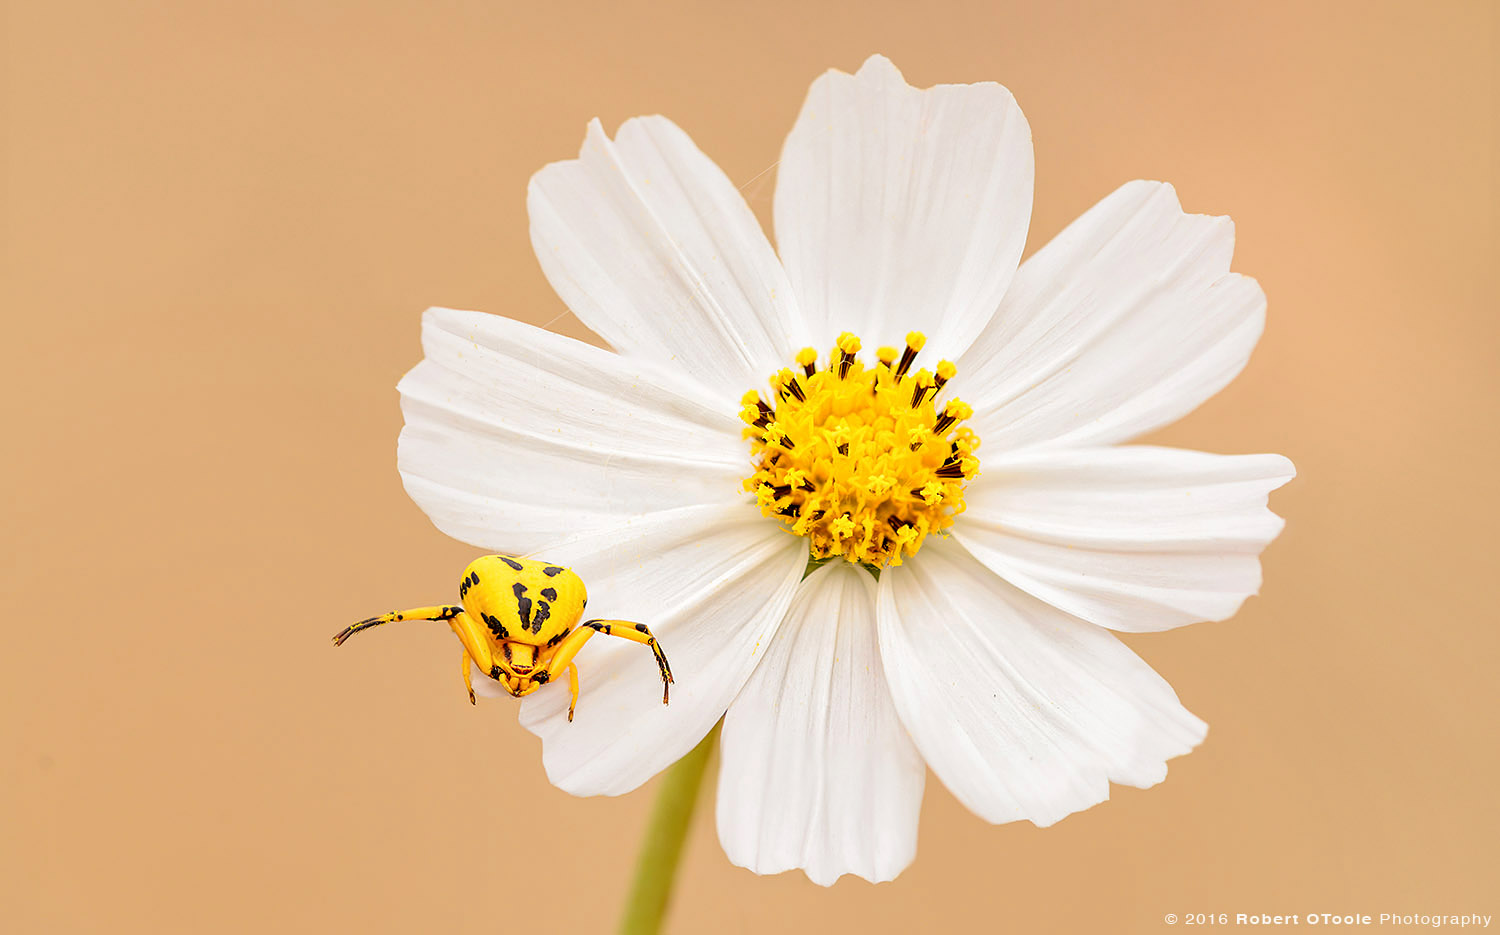 Yellow Crab Spider on White Cosmos Flower